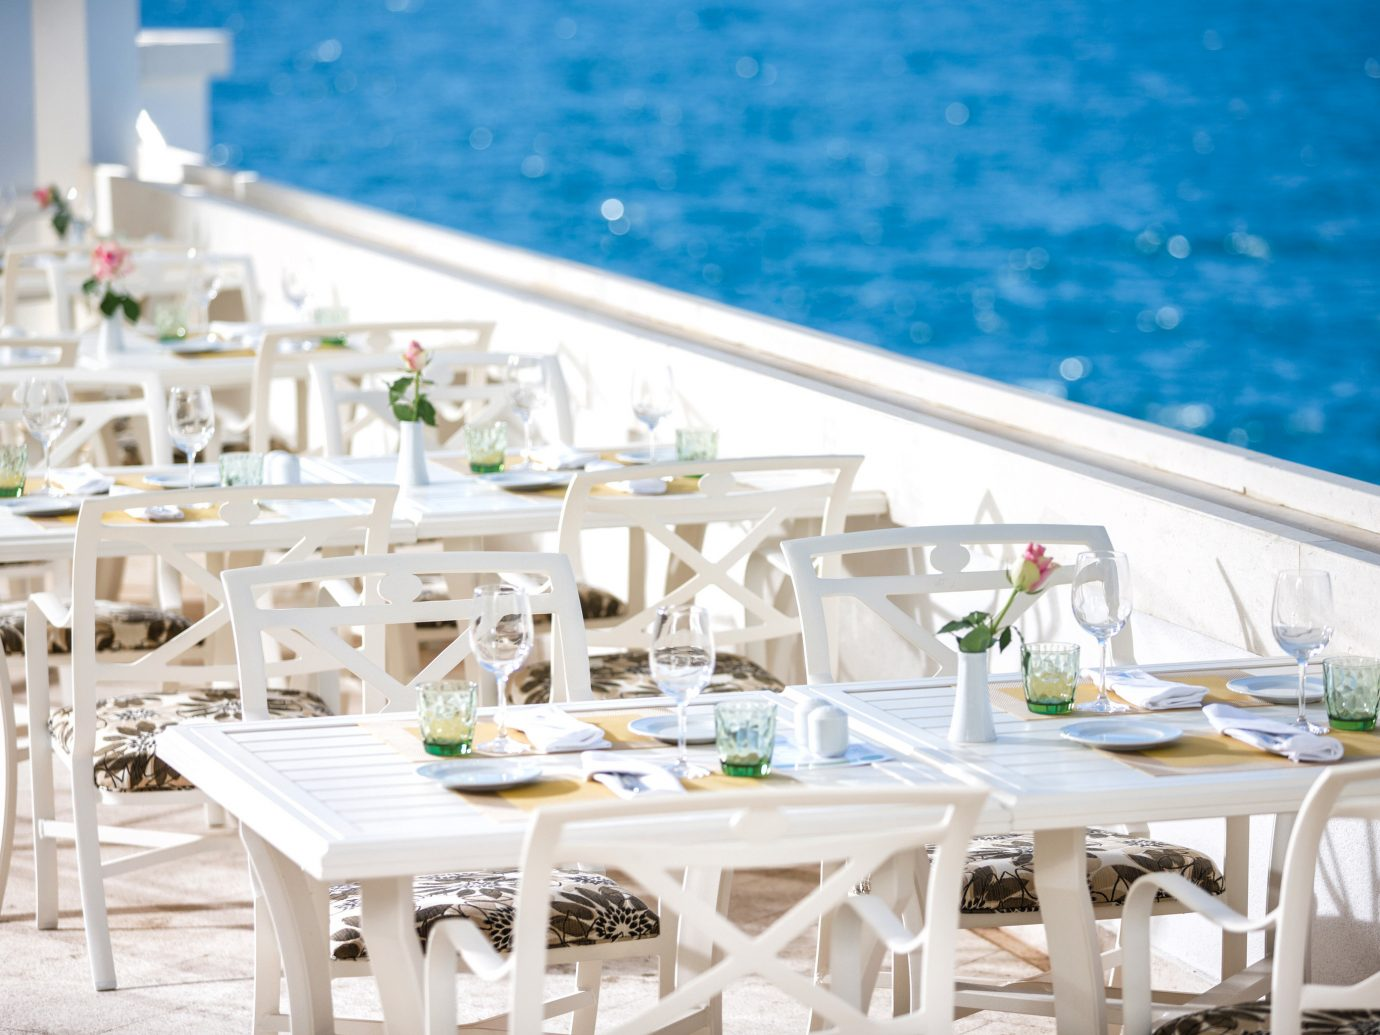 Travel Tips table restaurant meal white Party function hall Dining rehearsal dinner banquet wedding reception Deck dining table